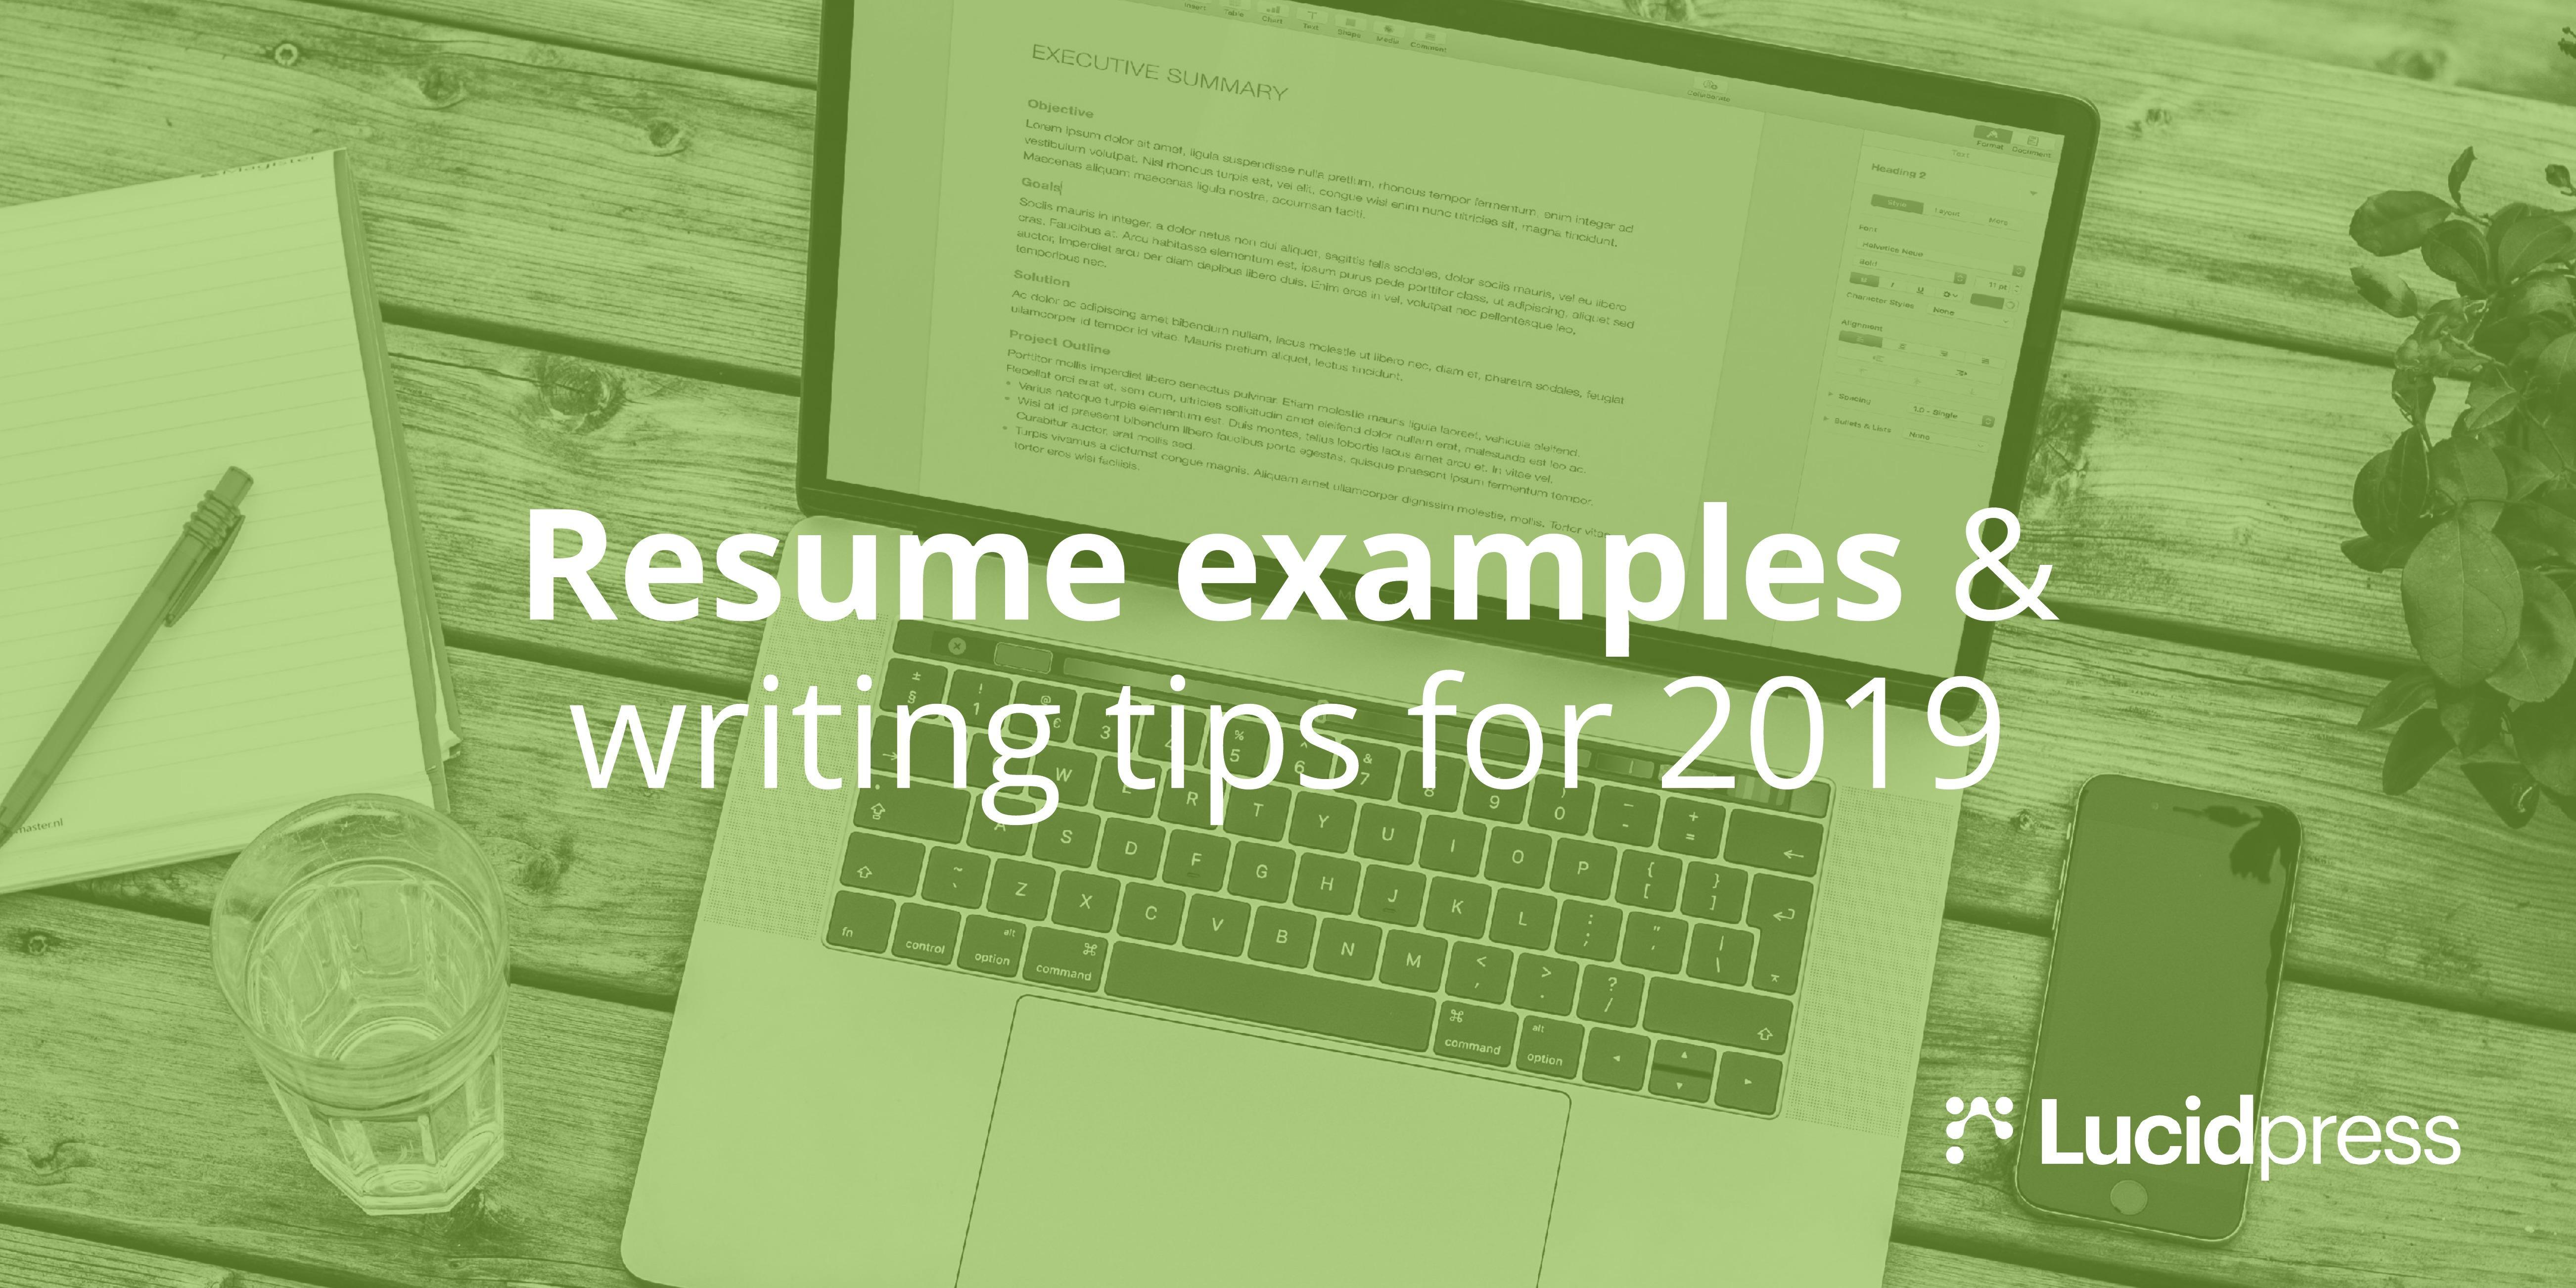 Resume Examples & Writing Tips for 2019 | Lucidpress